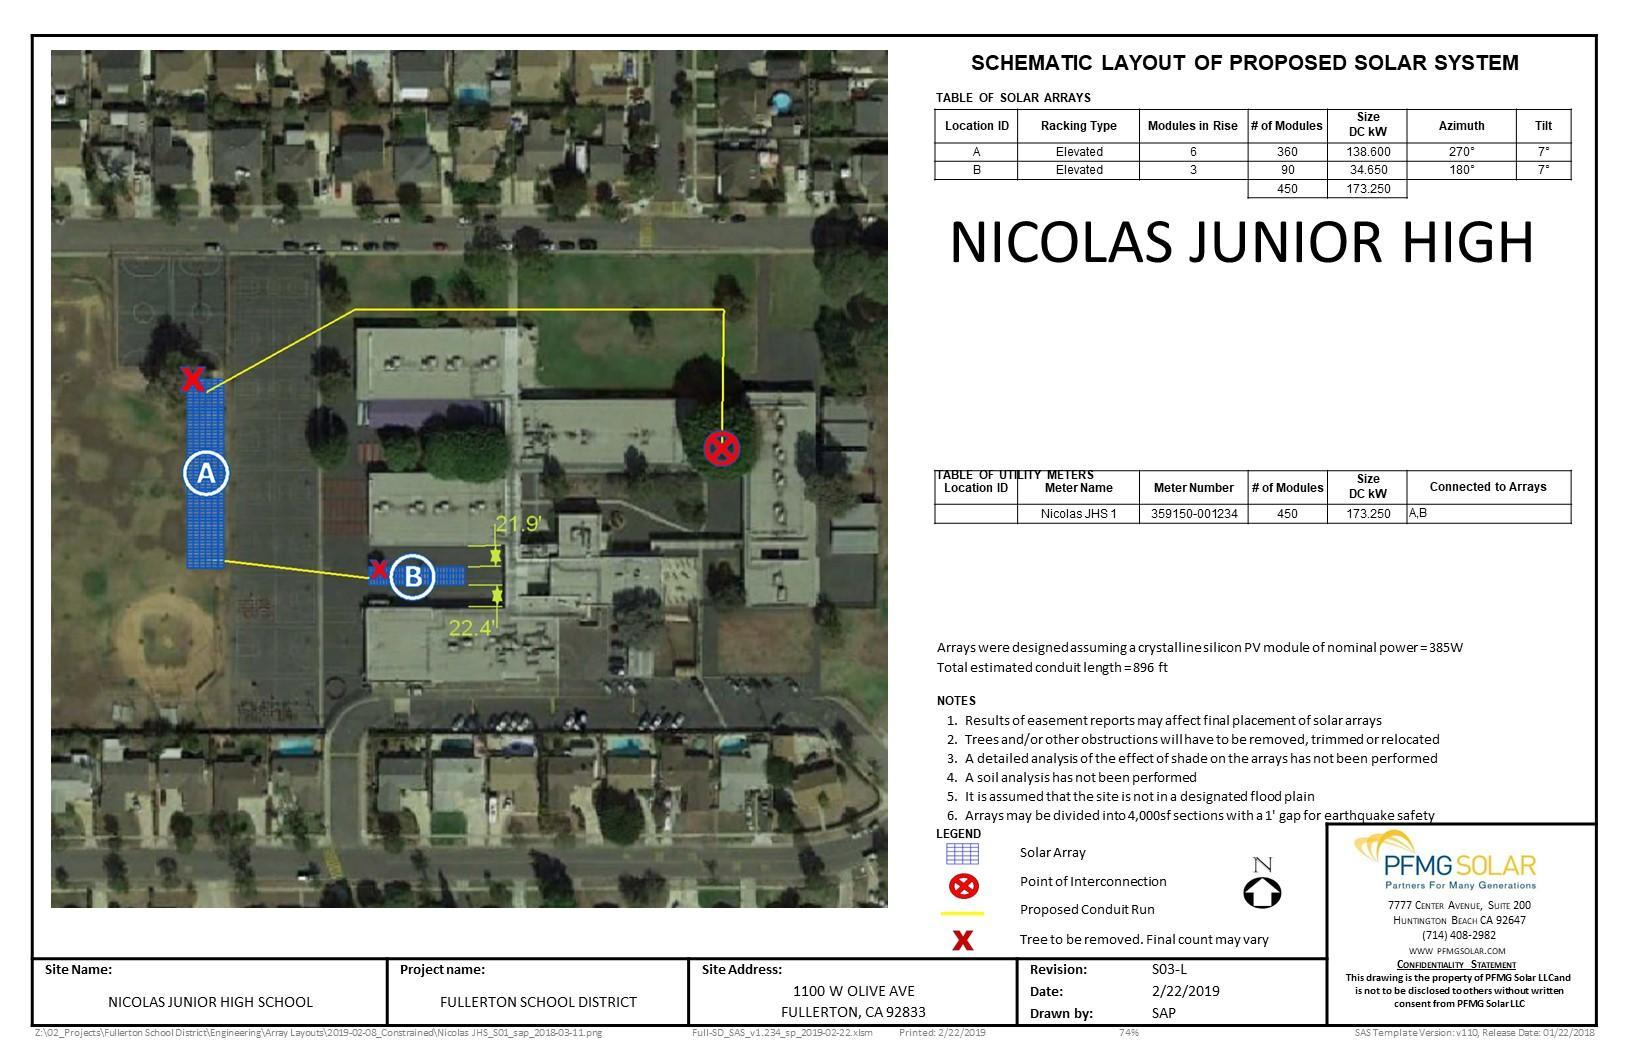 Nicolas Junior High Schematic Layout of Proposed Solar System